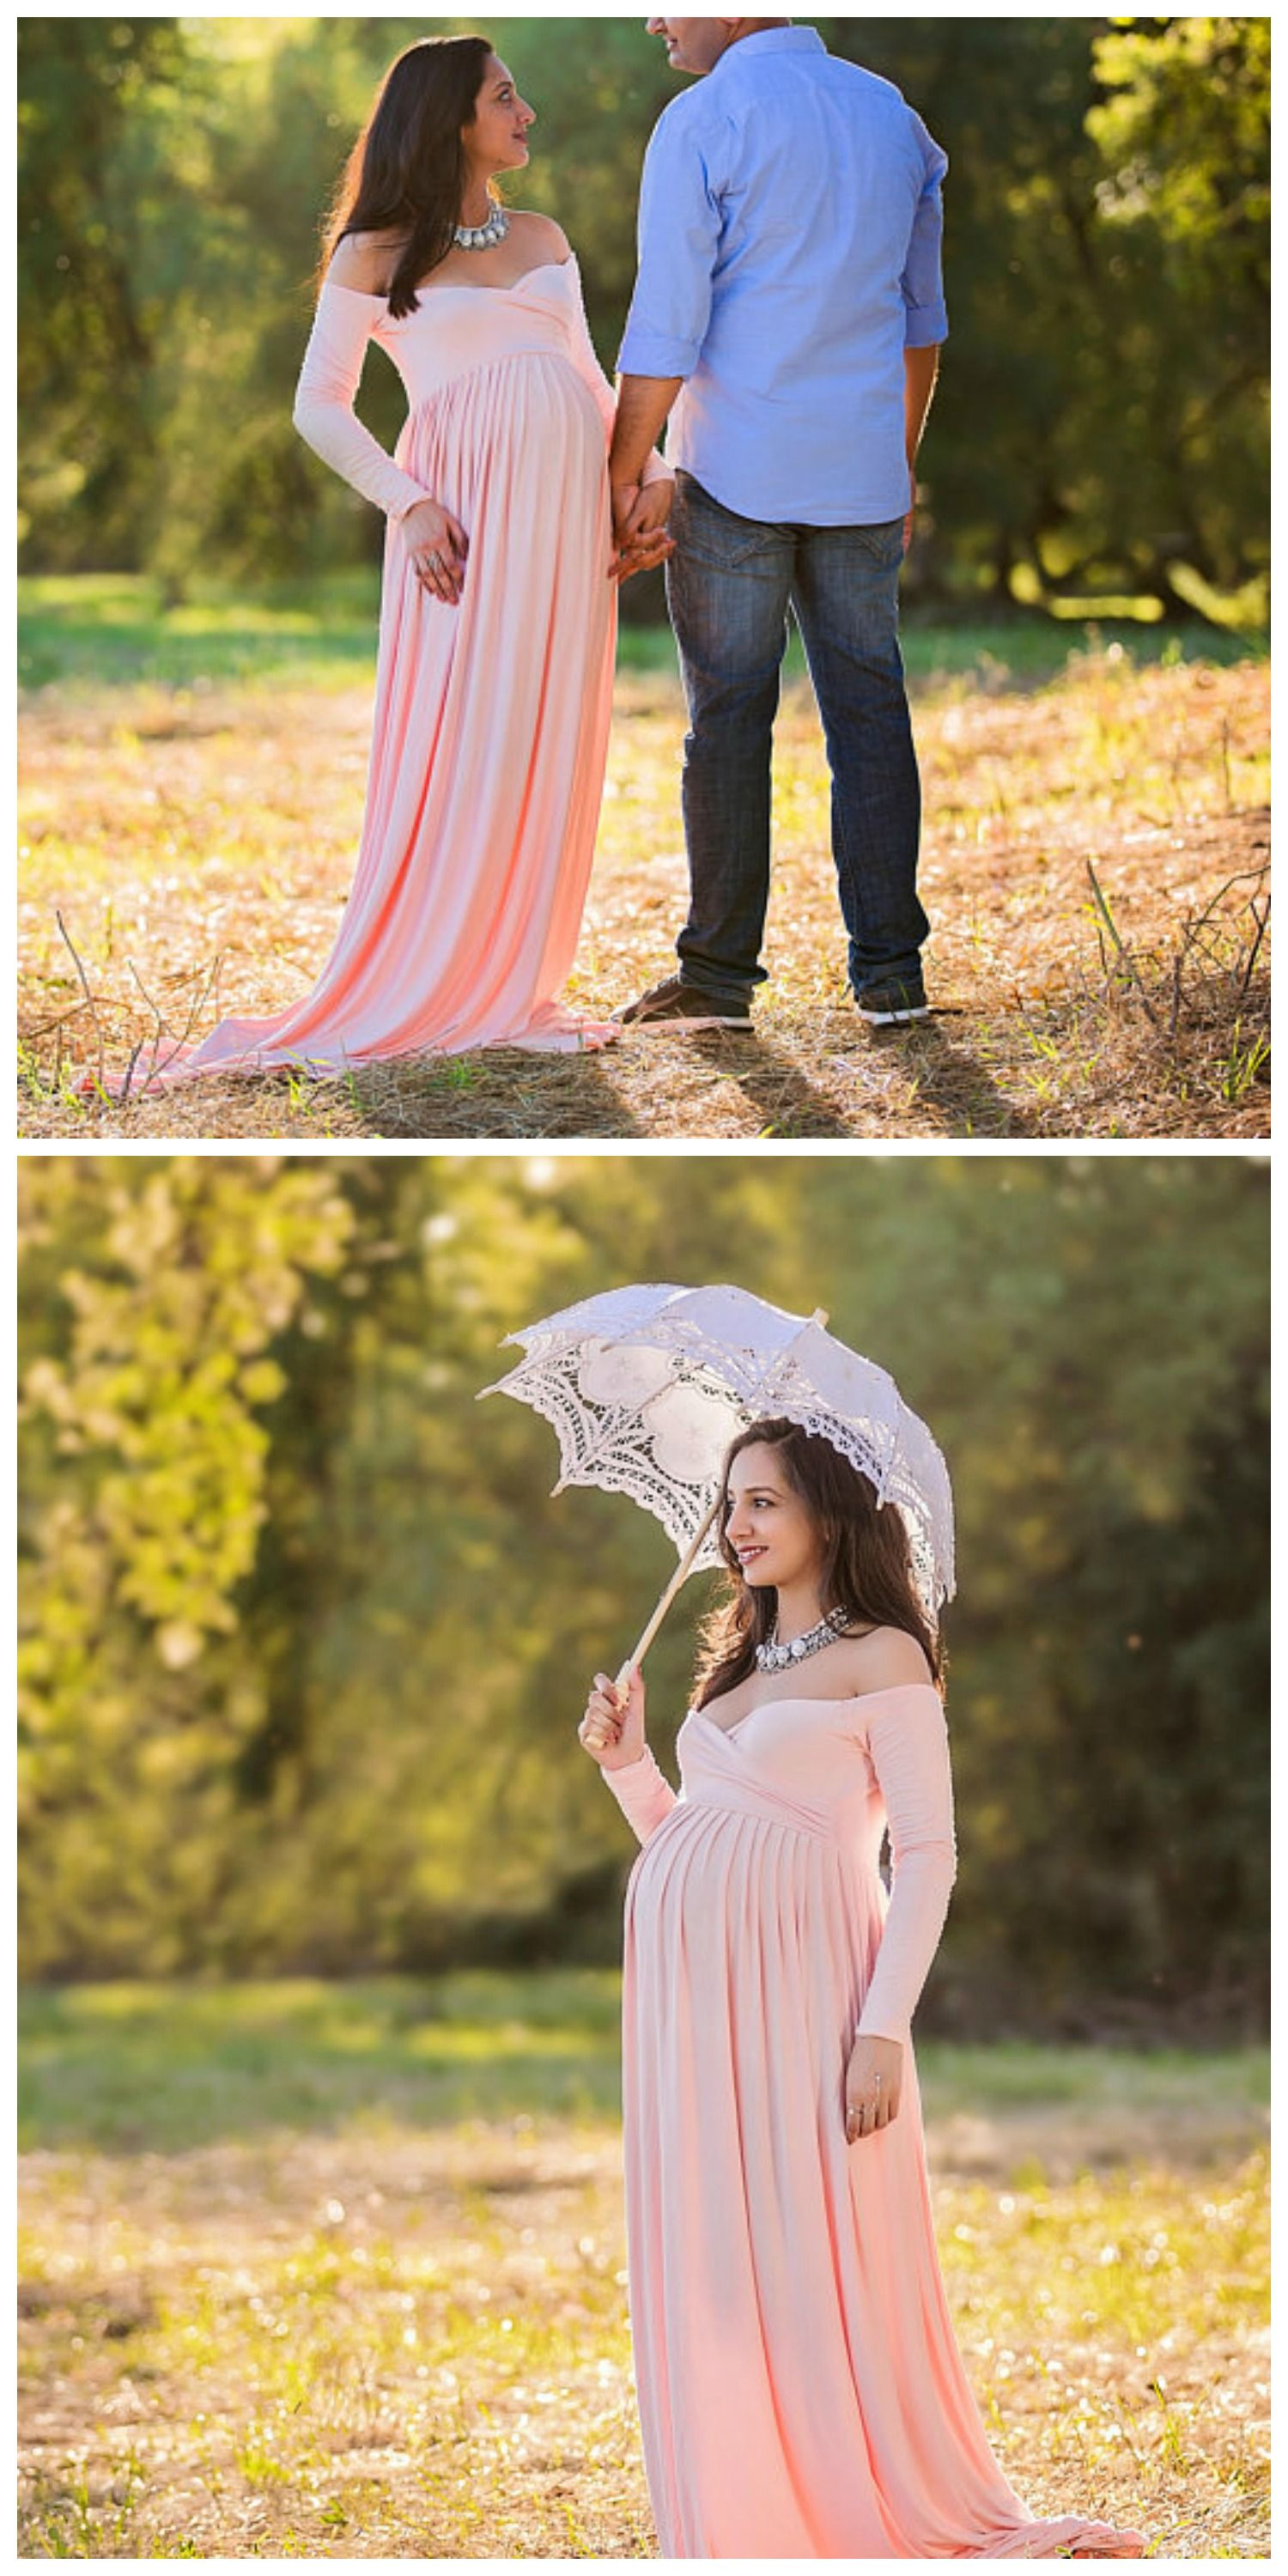 Perfect for your Maternity Shoot Baby Shower Modeling